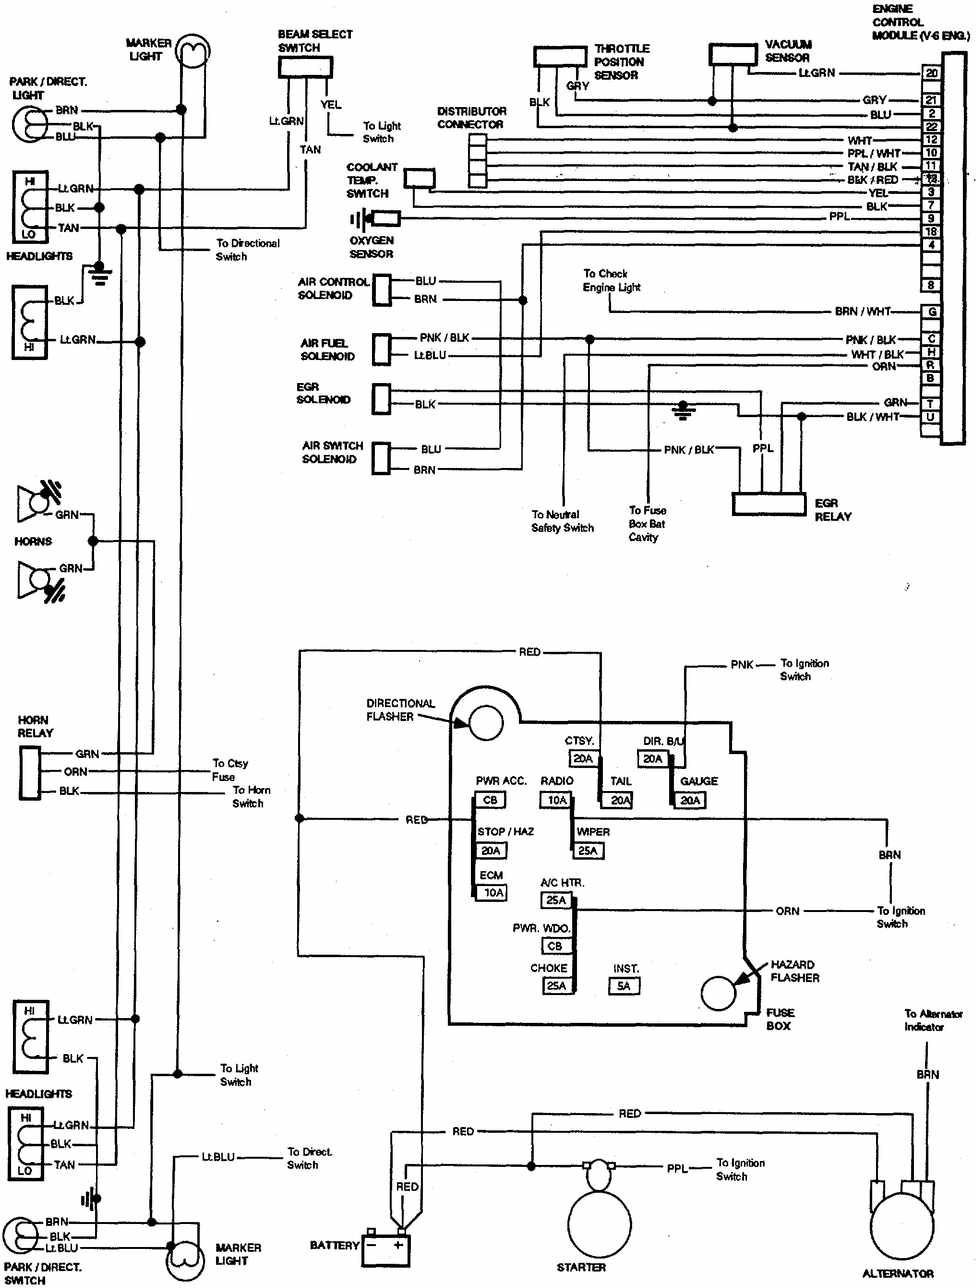 herein we can see the 1981 1987 chevrolet v8 trucks electrical wiring diagram description [ 976 x 1288 Pixel ]